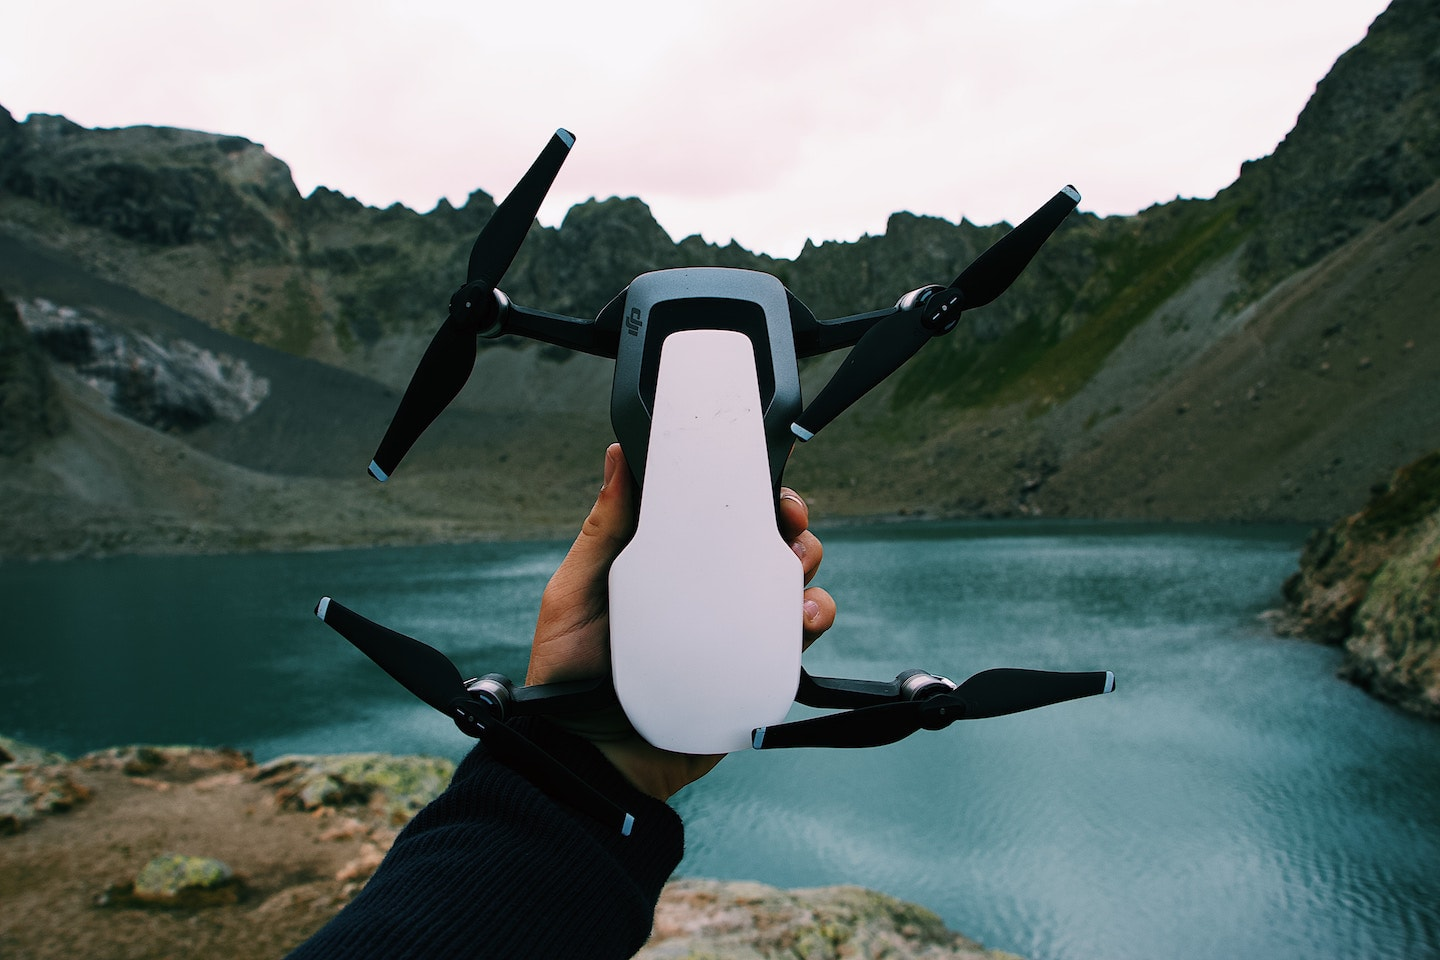 person holding drone in front of water and mountains